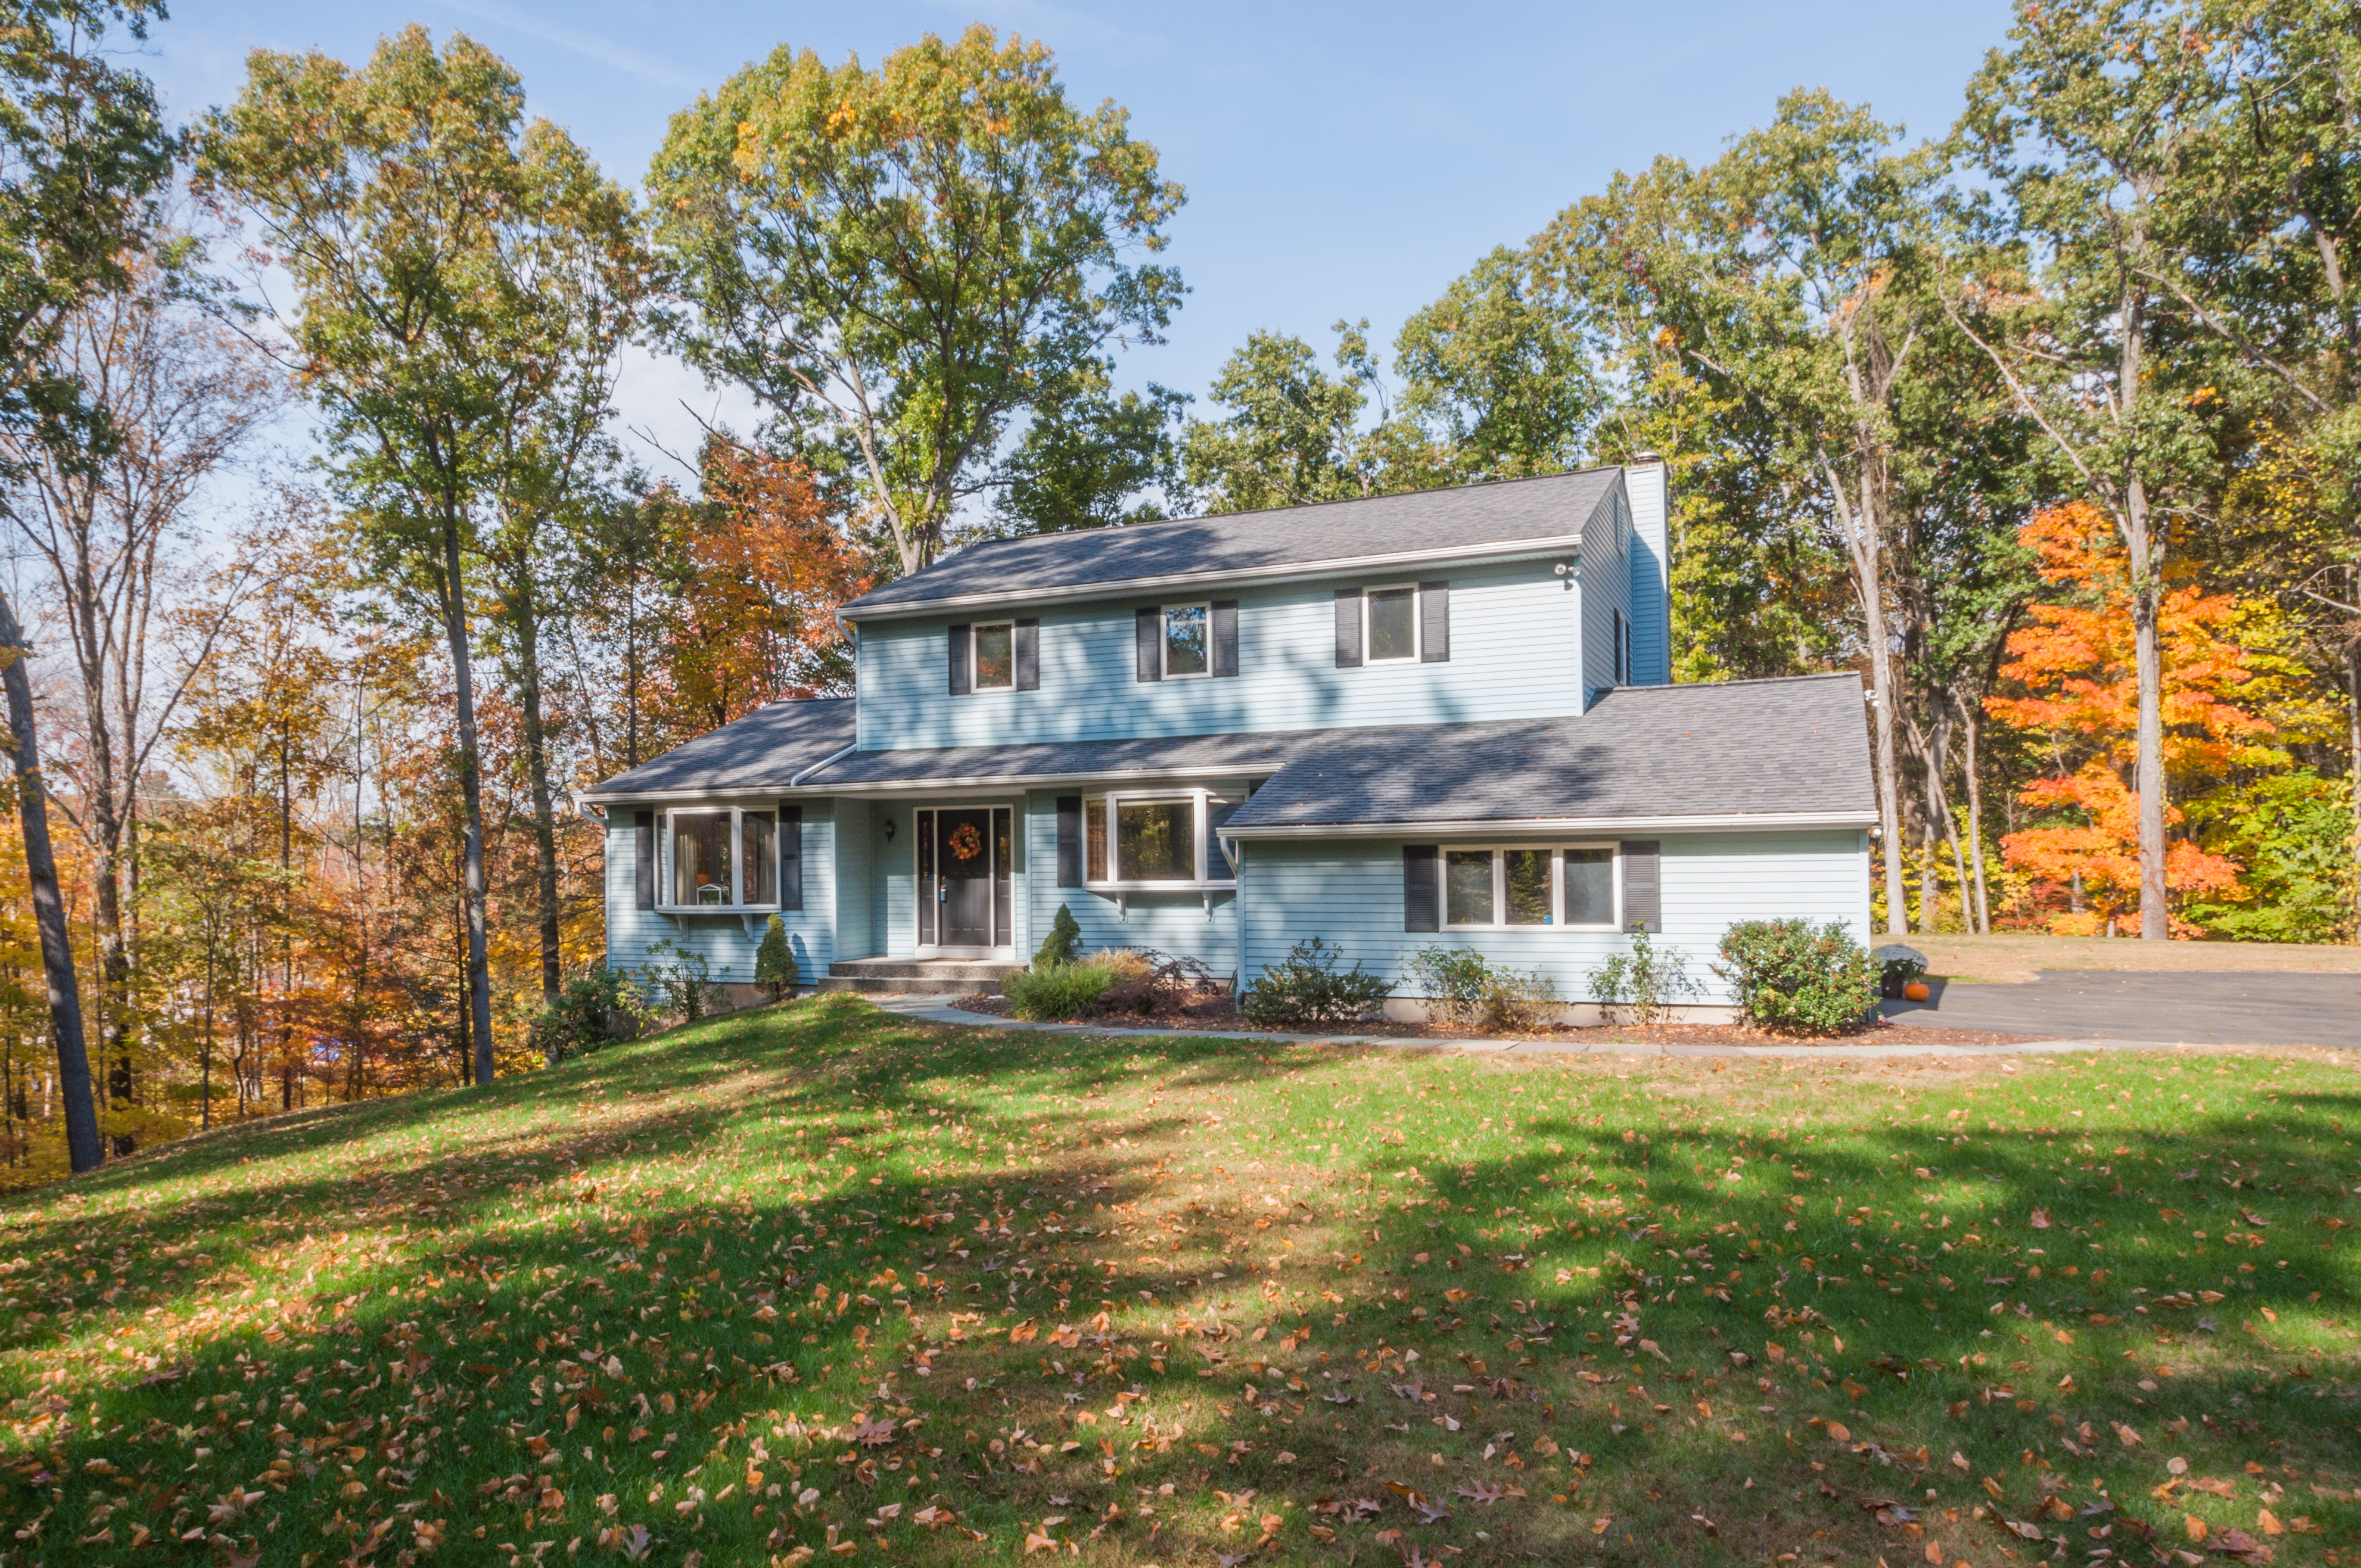 Single Family Home for Sale at Updated Colonial 37 40 Acre Mountain Road Danbury, Connecticut 06811 United States